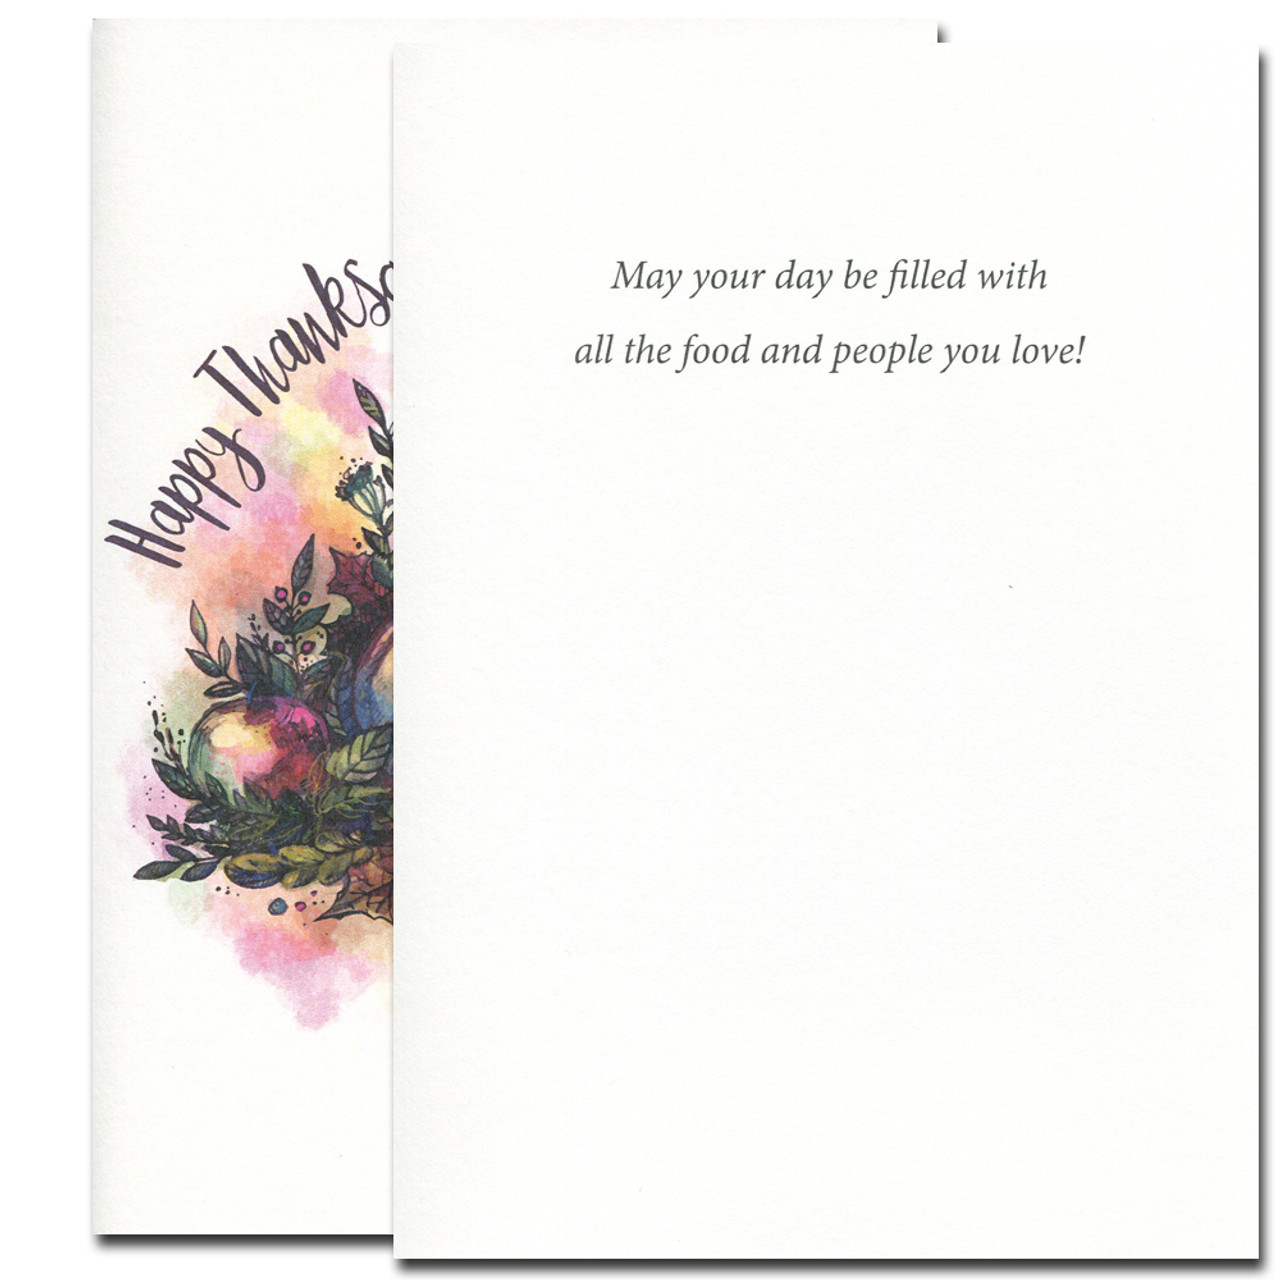 Inside of Thanksgiving card reads: May your day be filled with all the food and people you love!